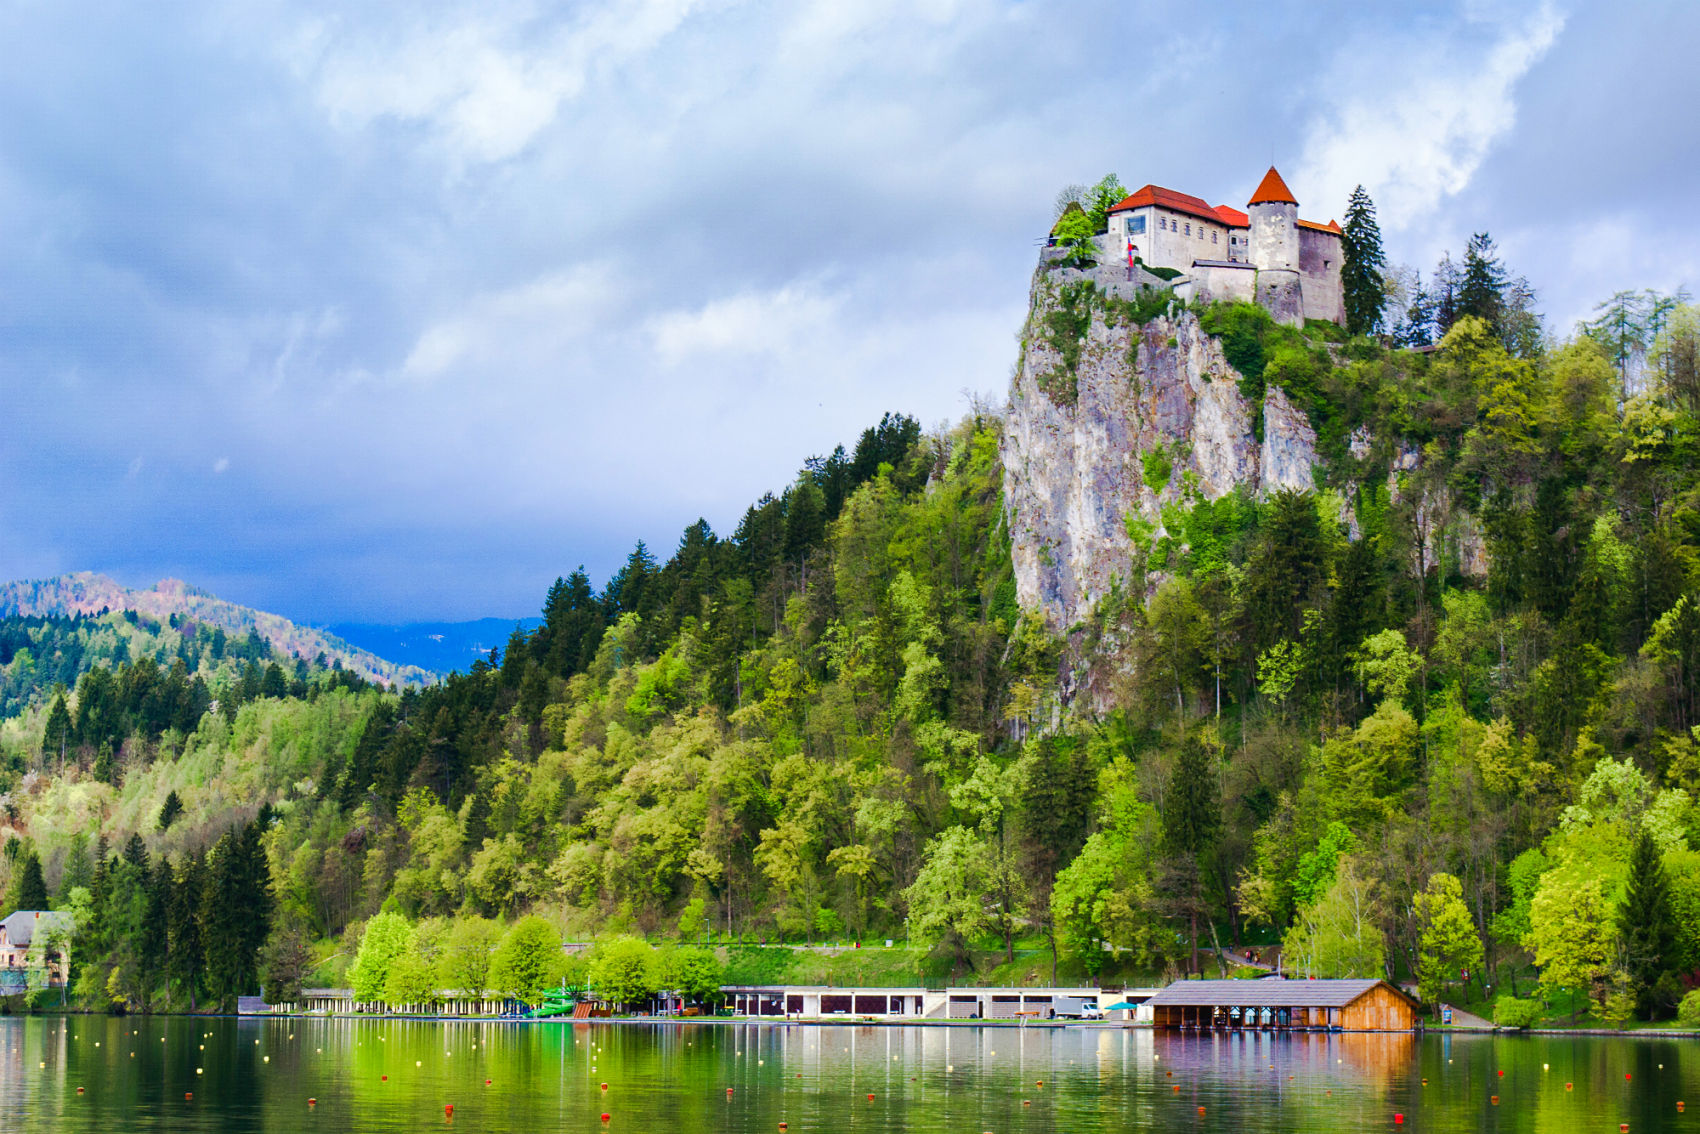 Bled castle overlooking Bled lake Slovenia